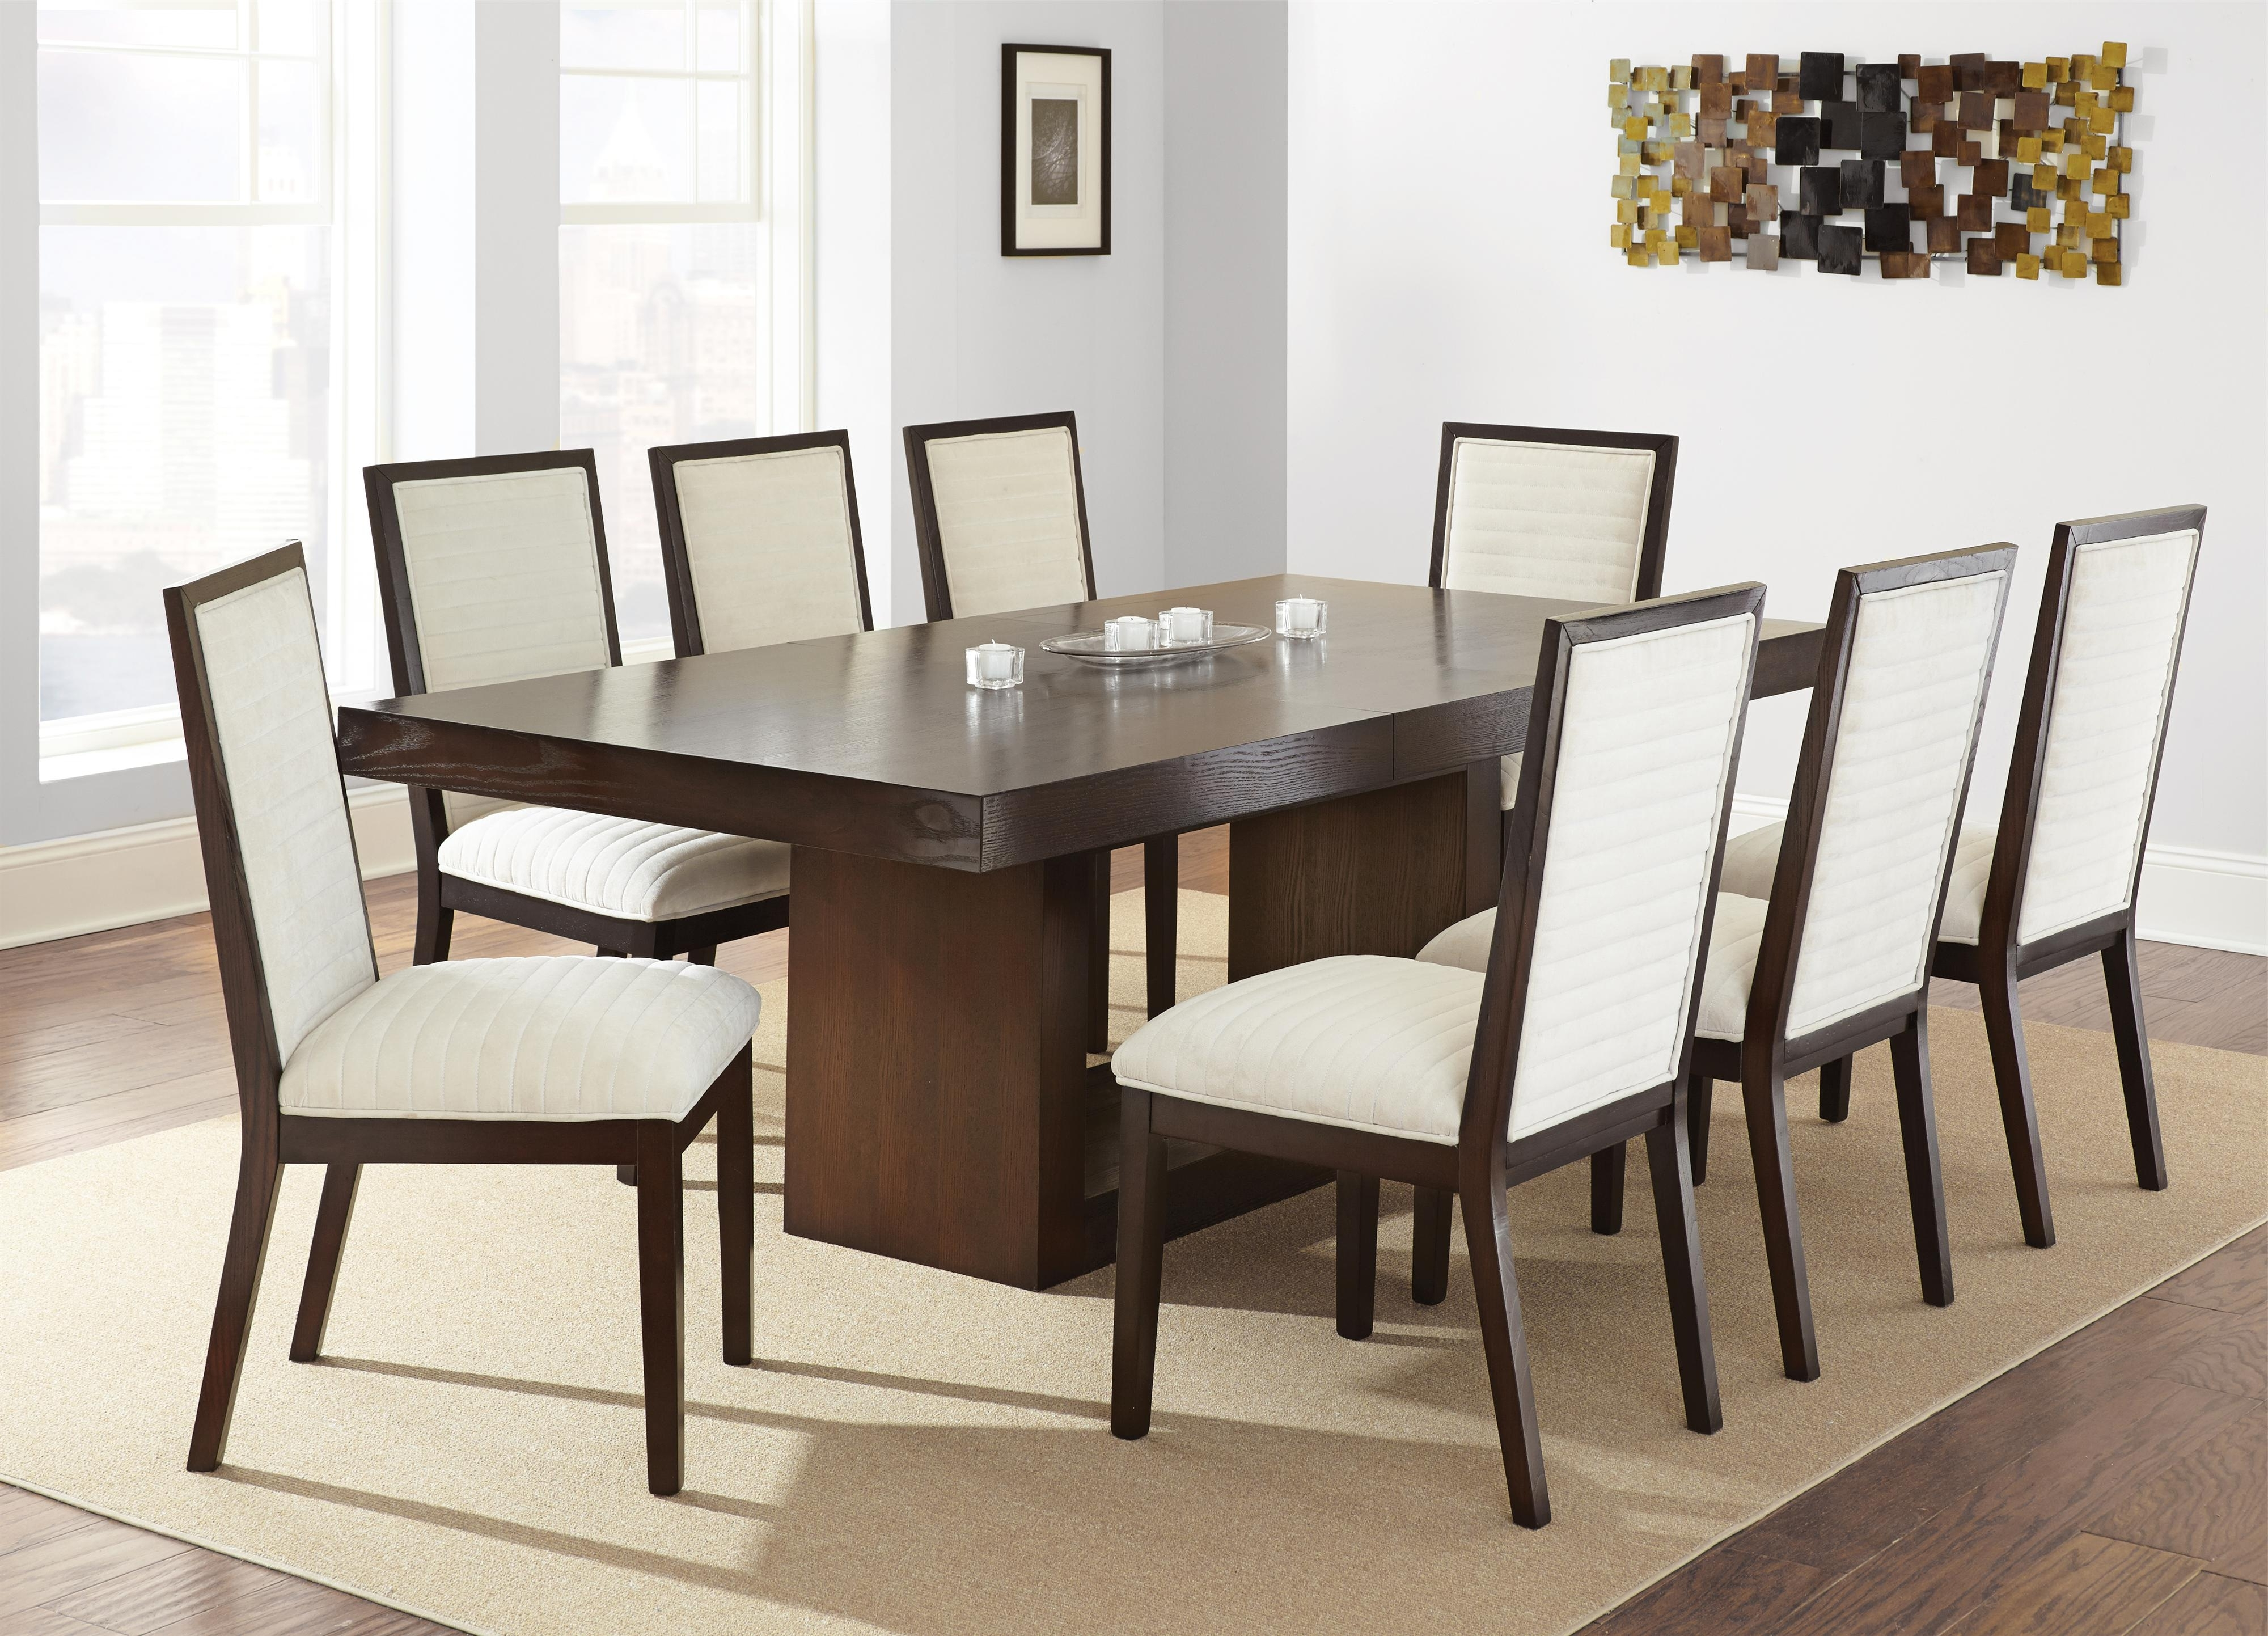 Jaxon 5 Piece Round Dining Sets With Upholstered Chairs Intended For Newest Steve Silver Antonio 7 Piece Dining Set (View 23 of 25)